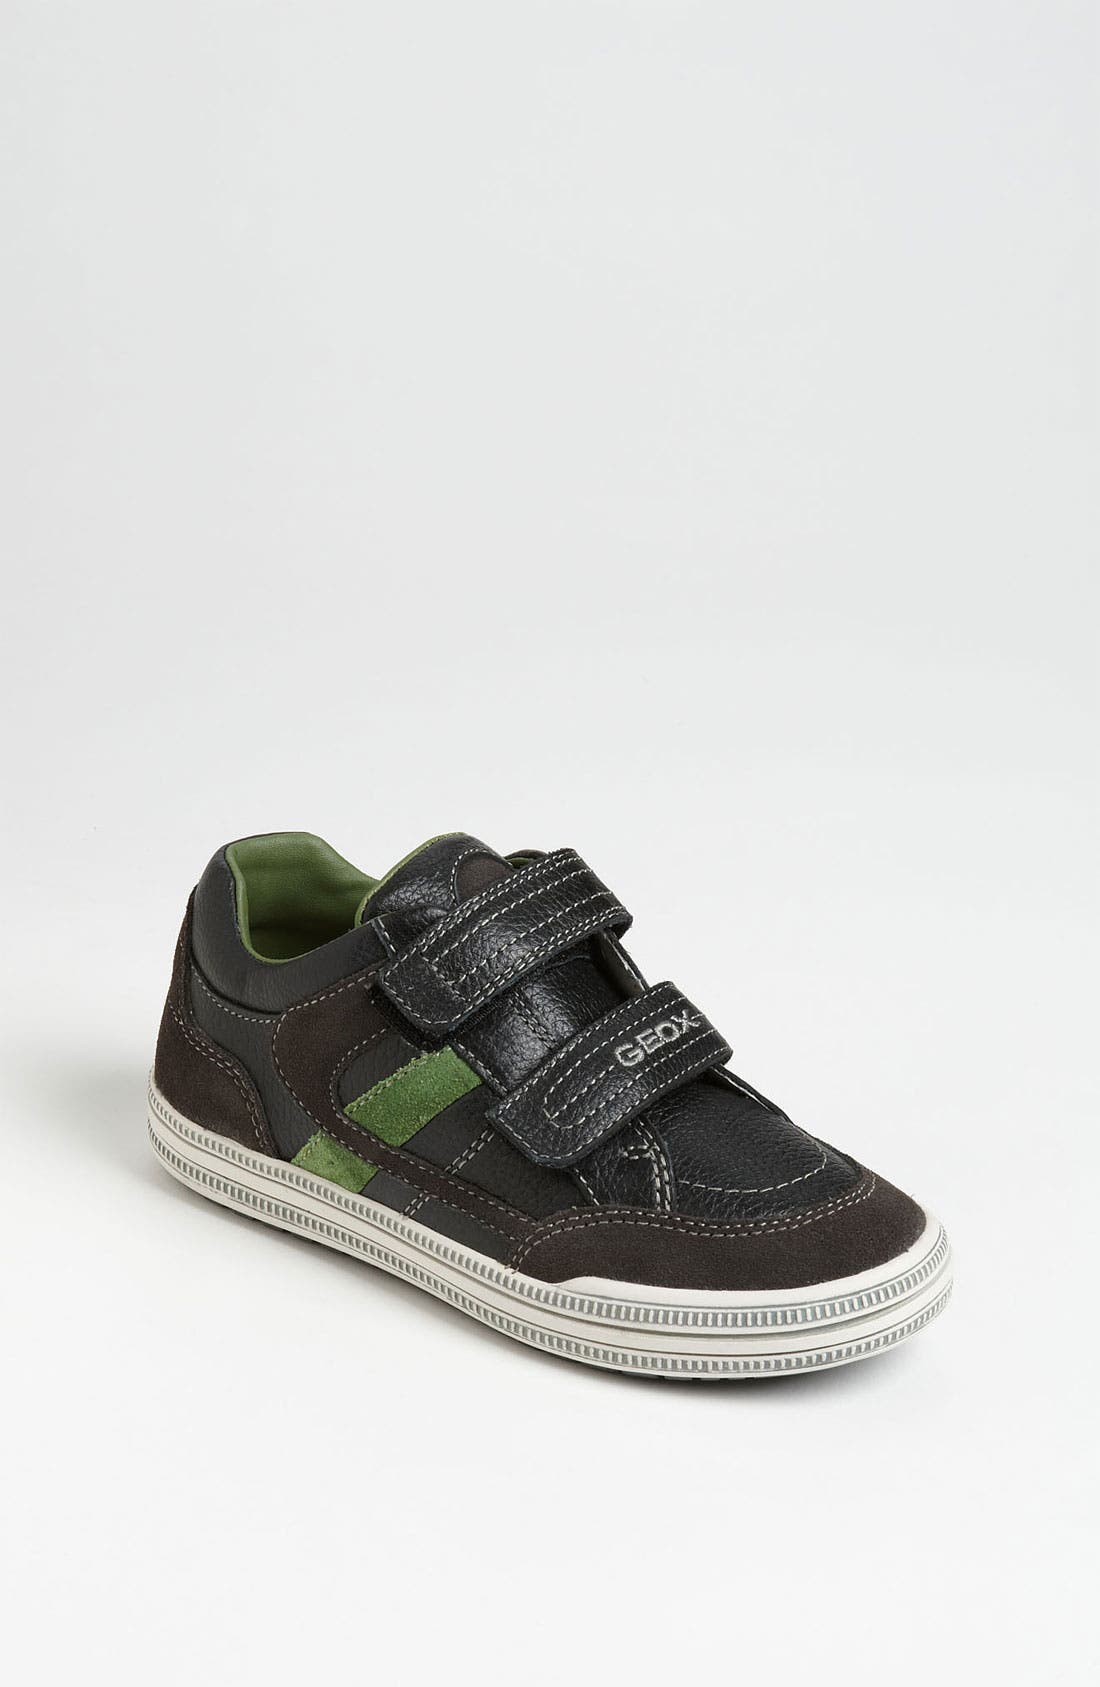 Alternate Image 1 Selected - Geox Sneaker (Toddler, Little Kid & Big Kid)